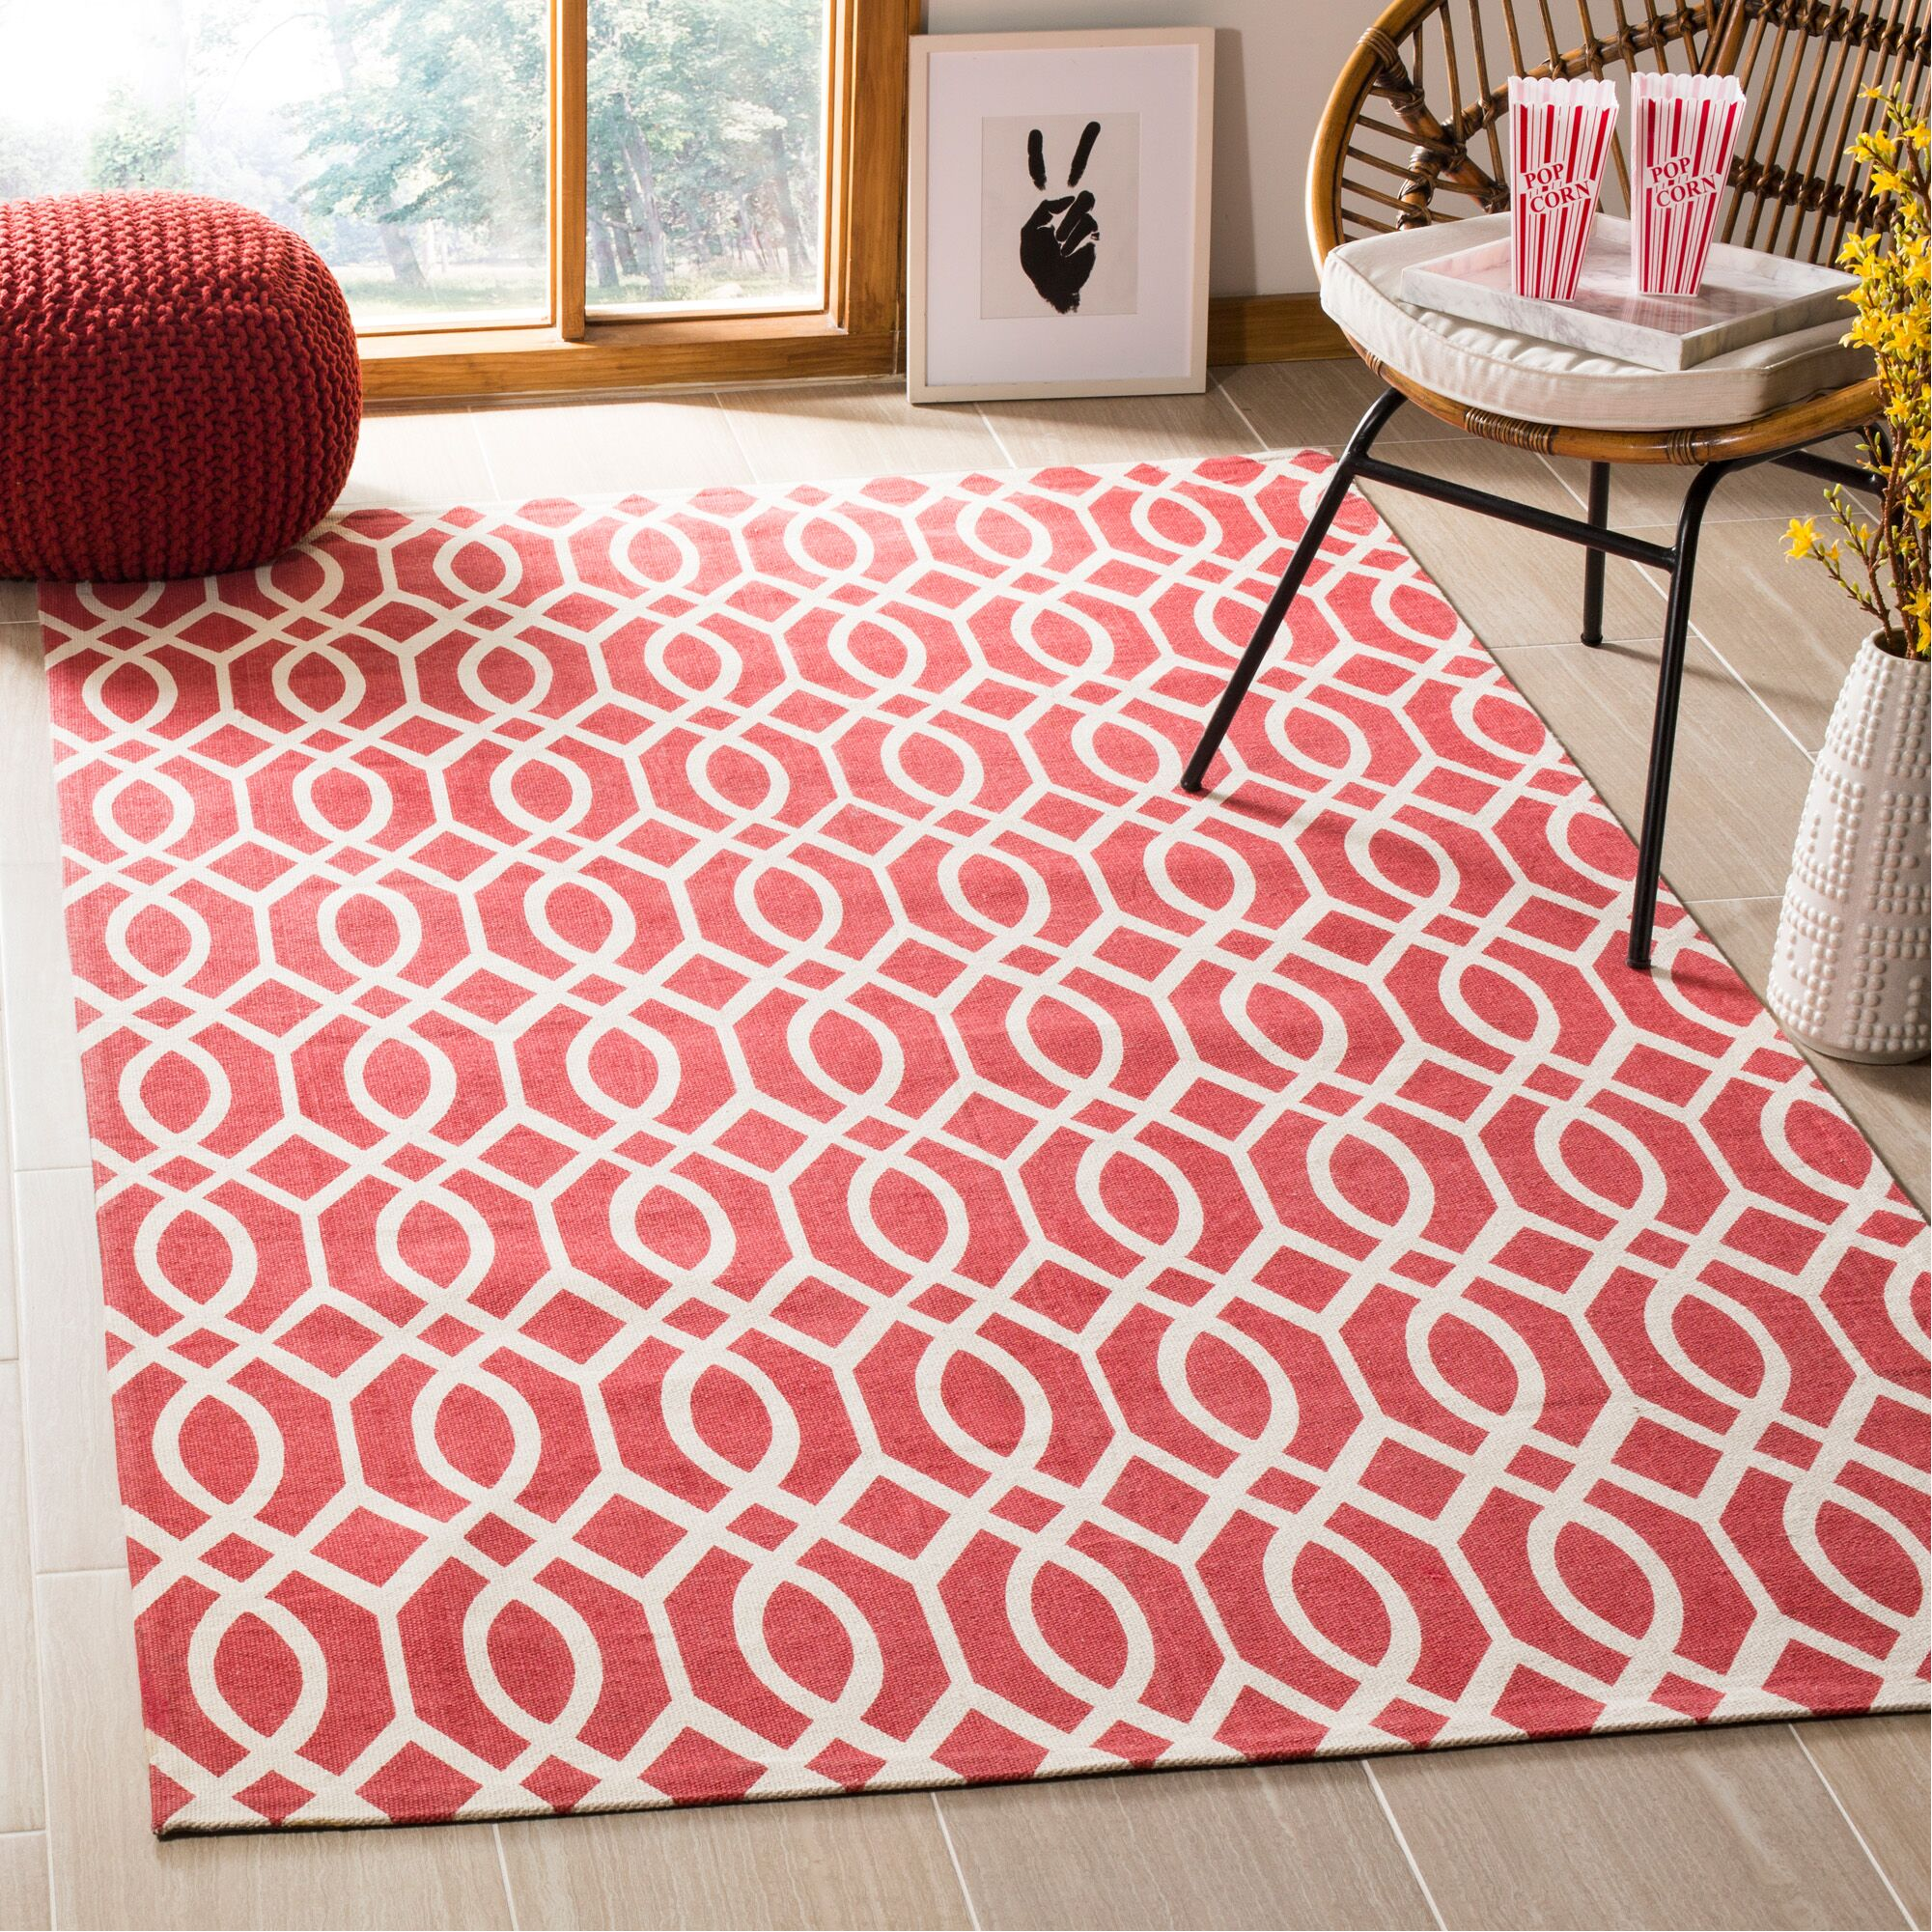 Nolan Hand-Loomed Coral/Ivory Area Rug Rug Size: Rectangle 5' x 8'